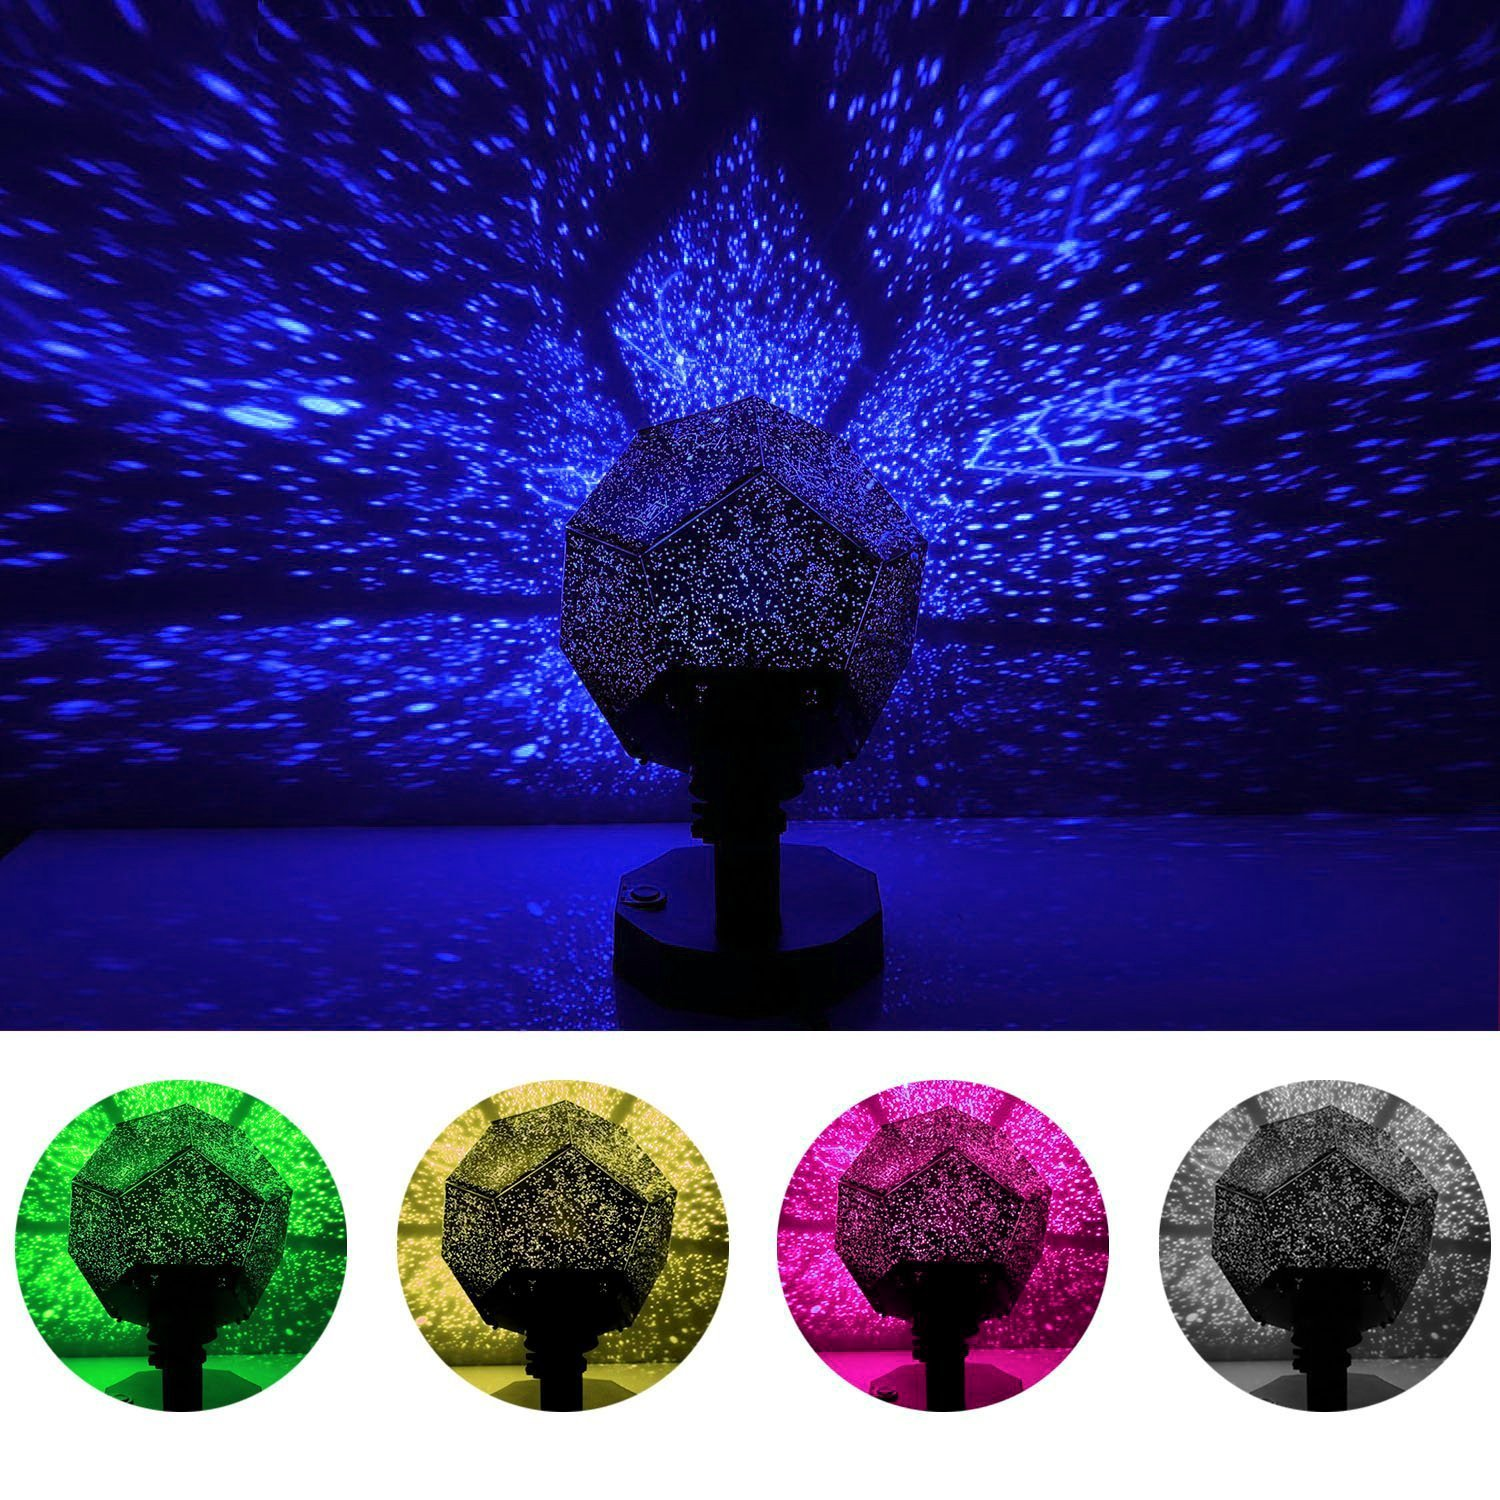 Baby Star Light Projector Ebought Star Night Light Projector Diy Sky Projection